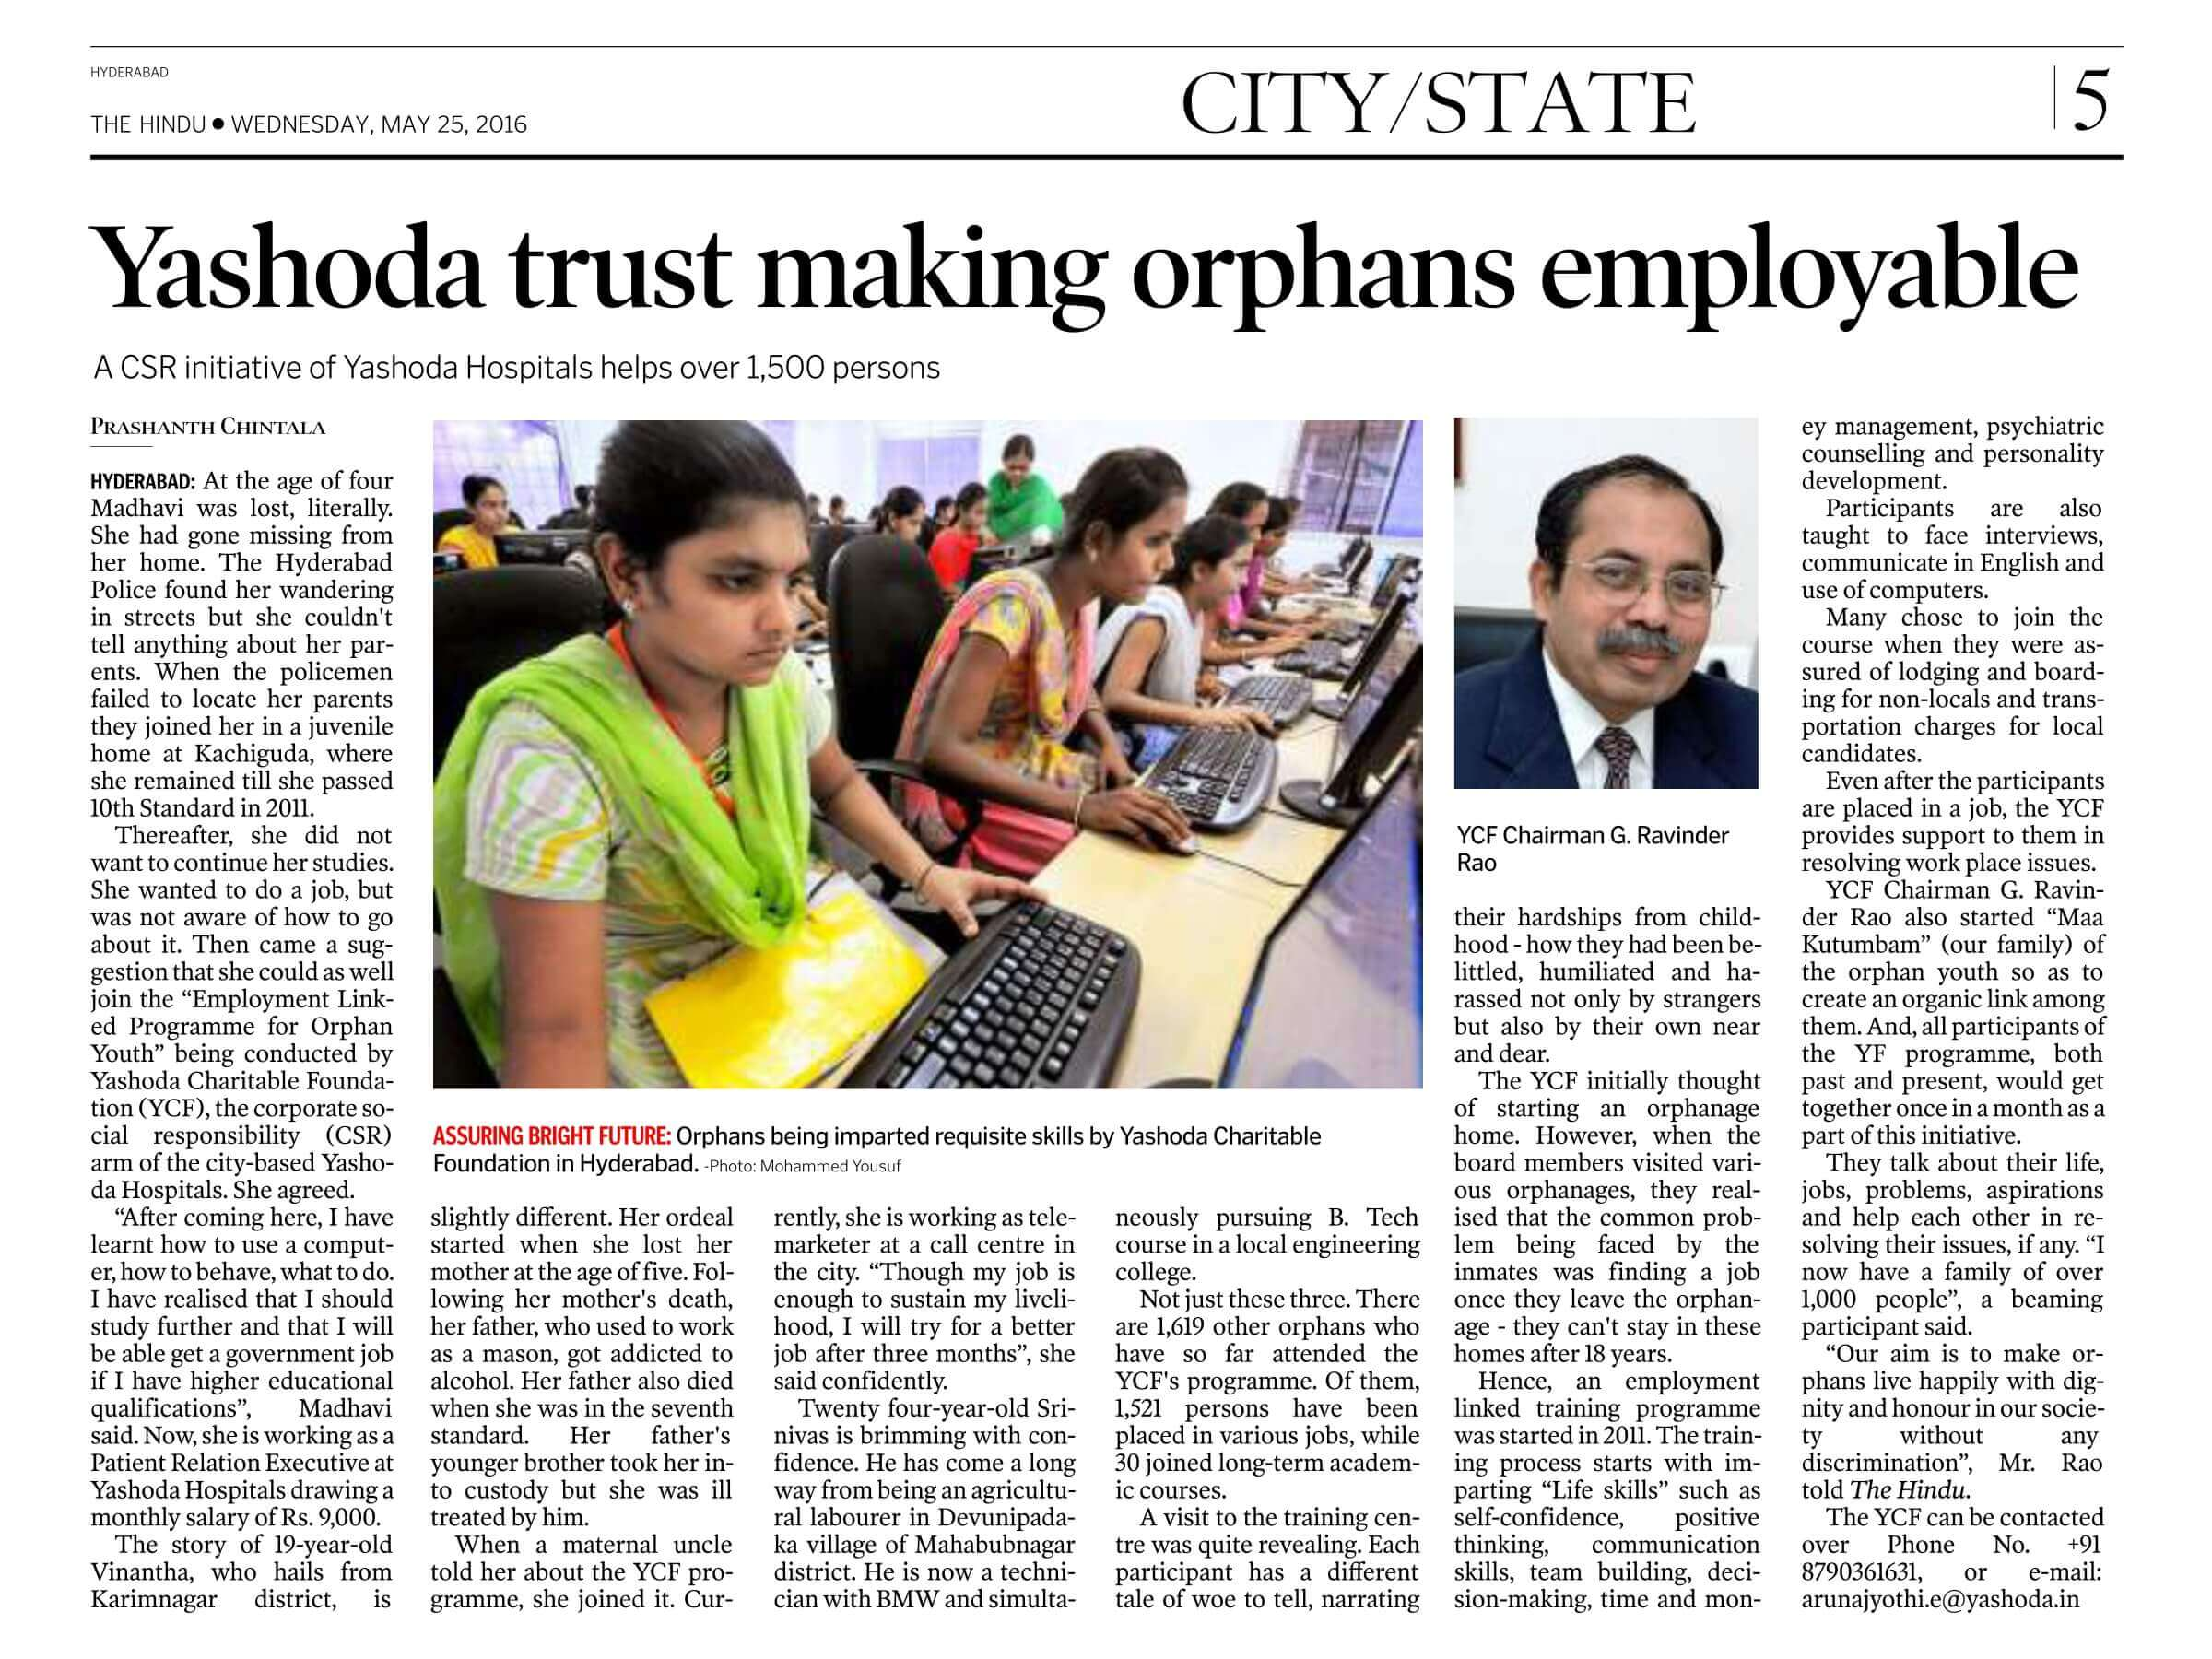 Yashoda trust making orphans employable